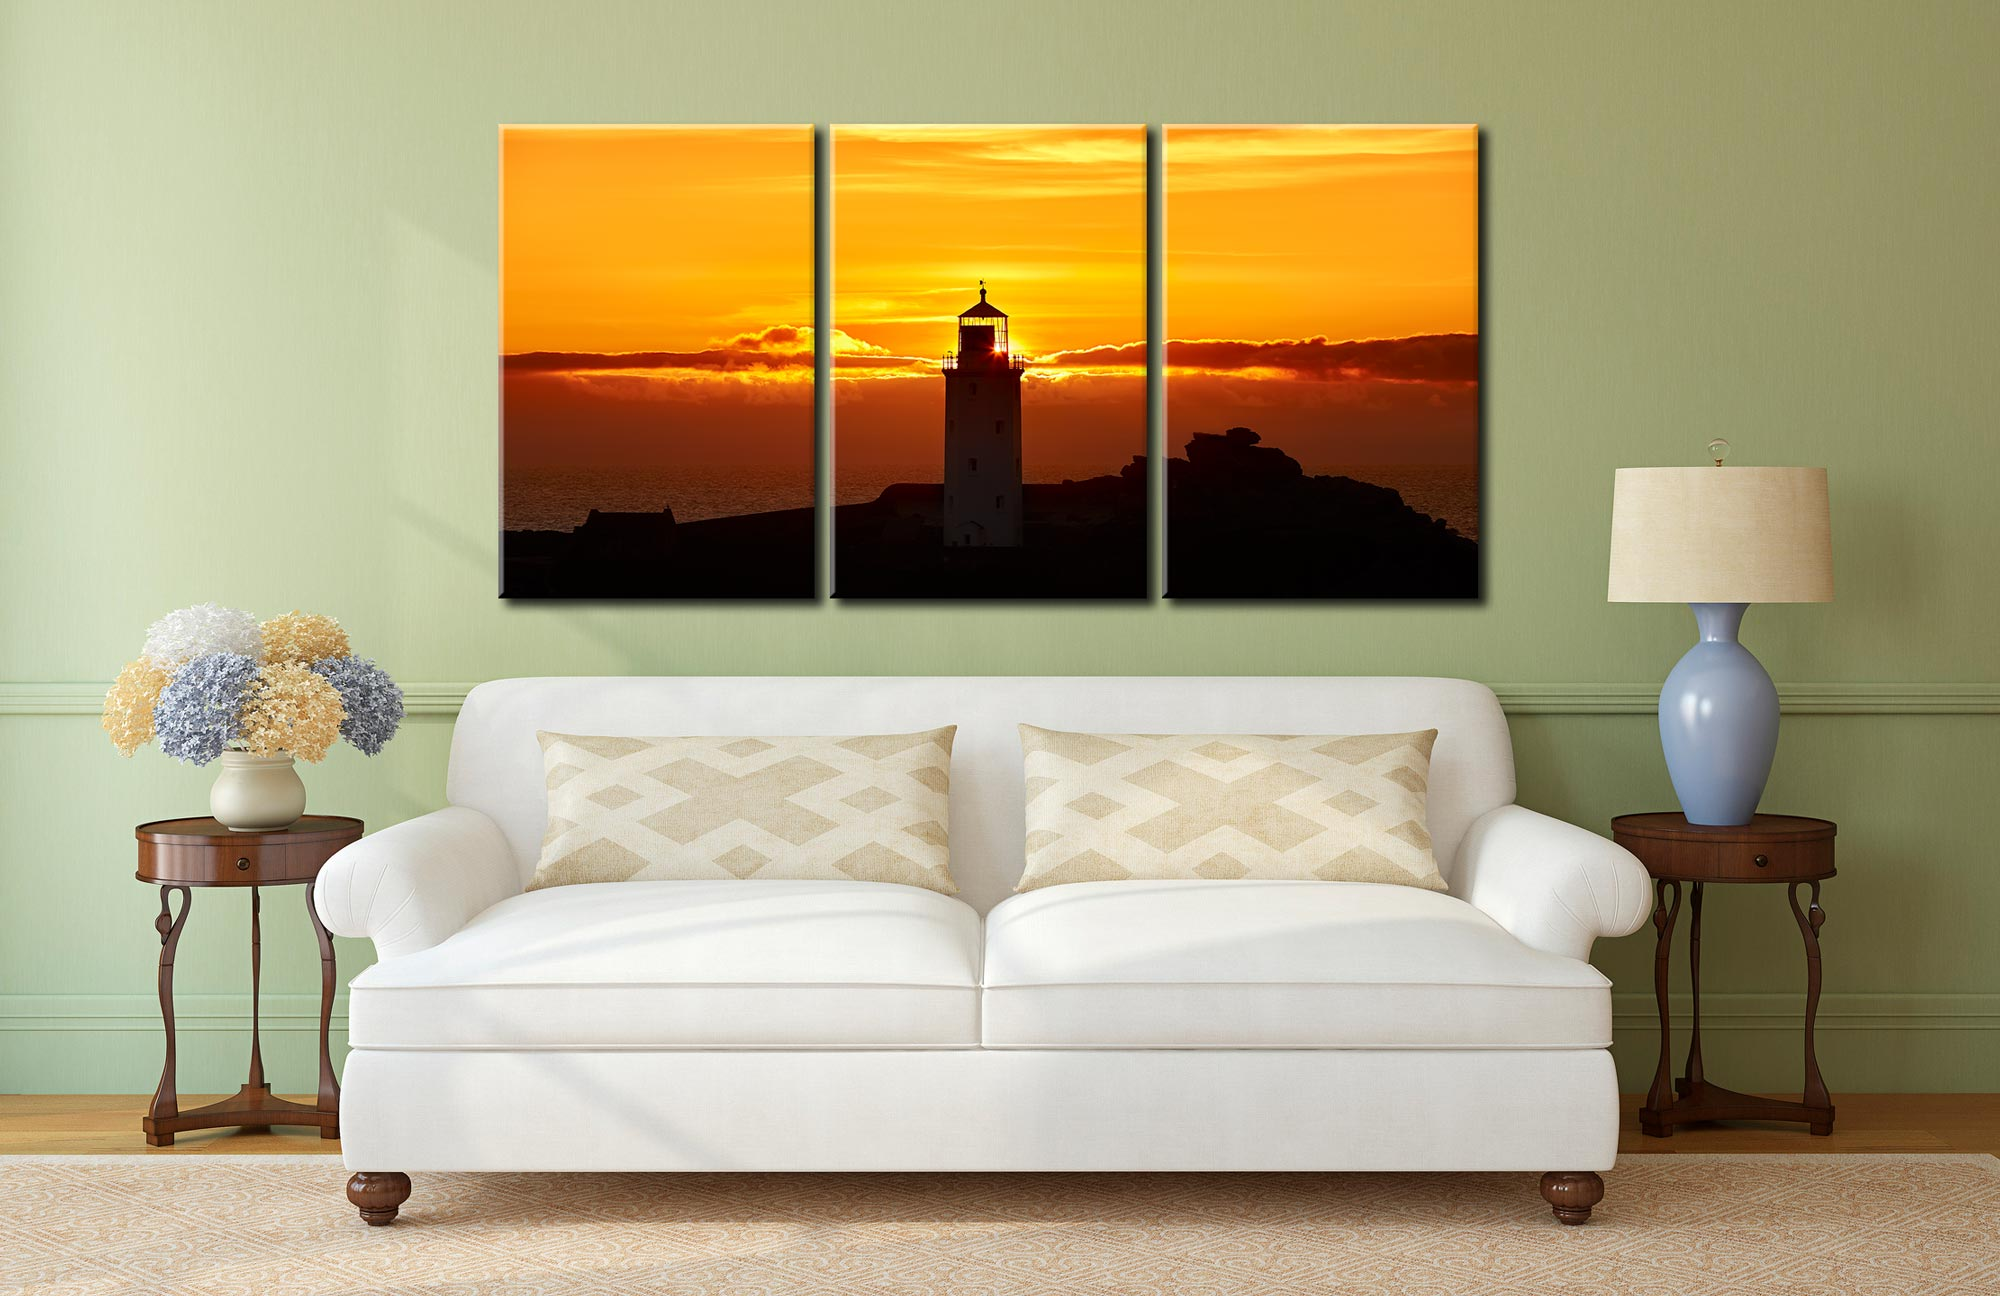 Sunbeams of Godrevy Lighthouse - 3 Panel Canvas on Wall